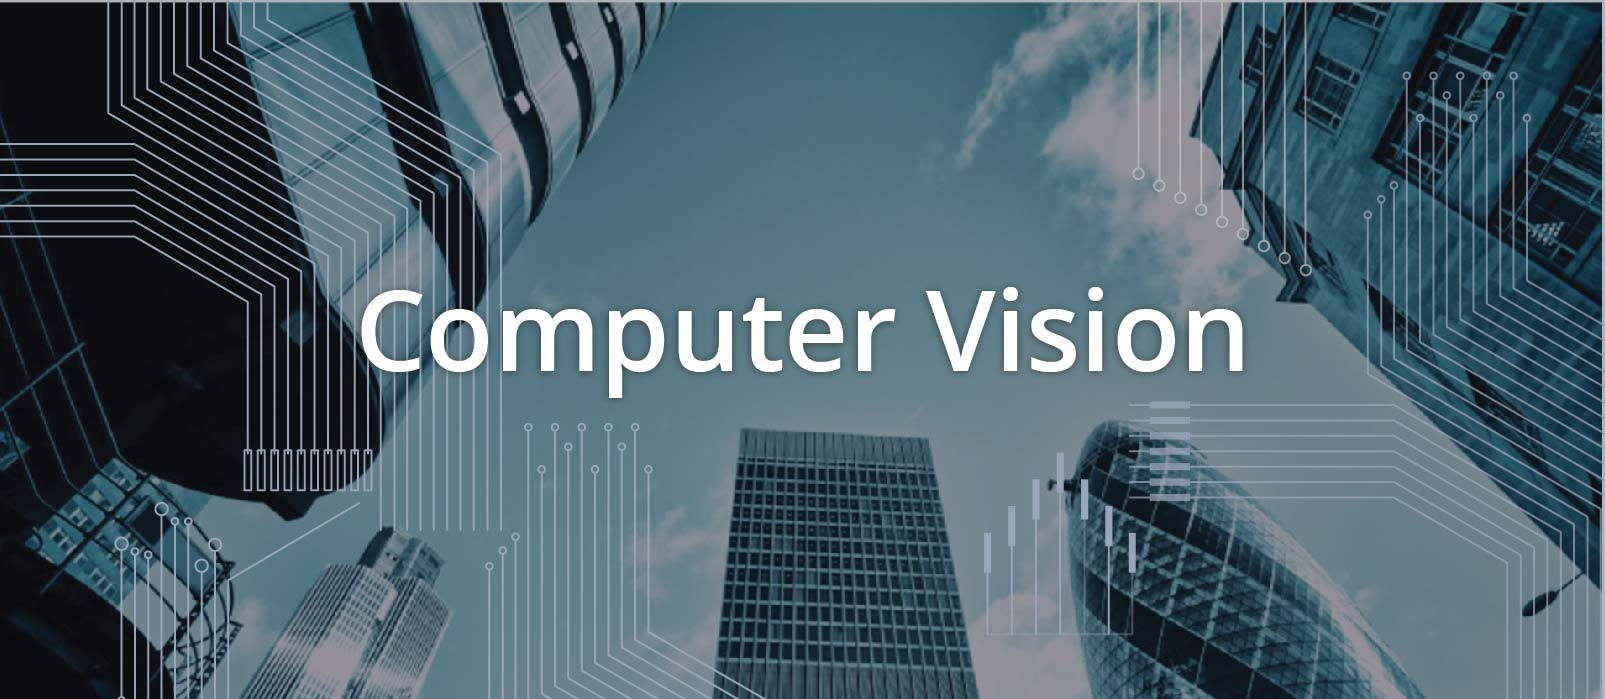 What Is Computer Vision?